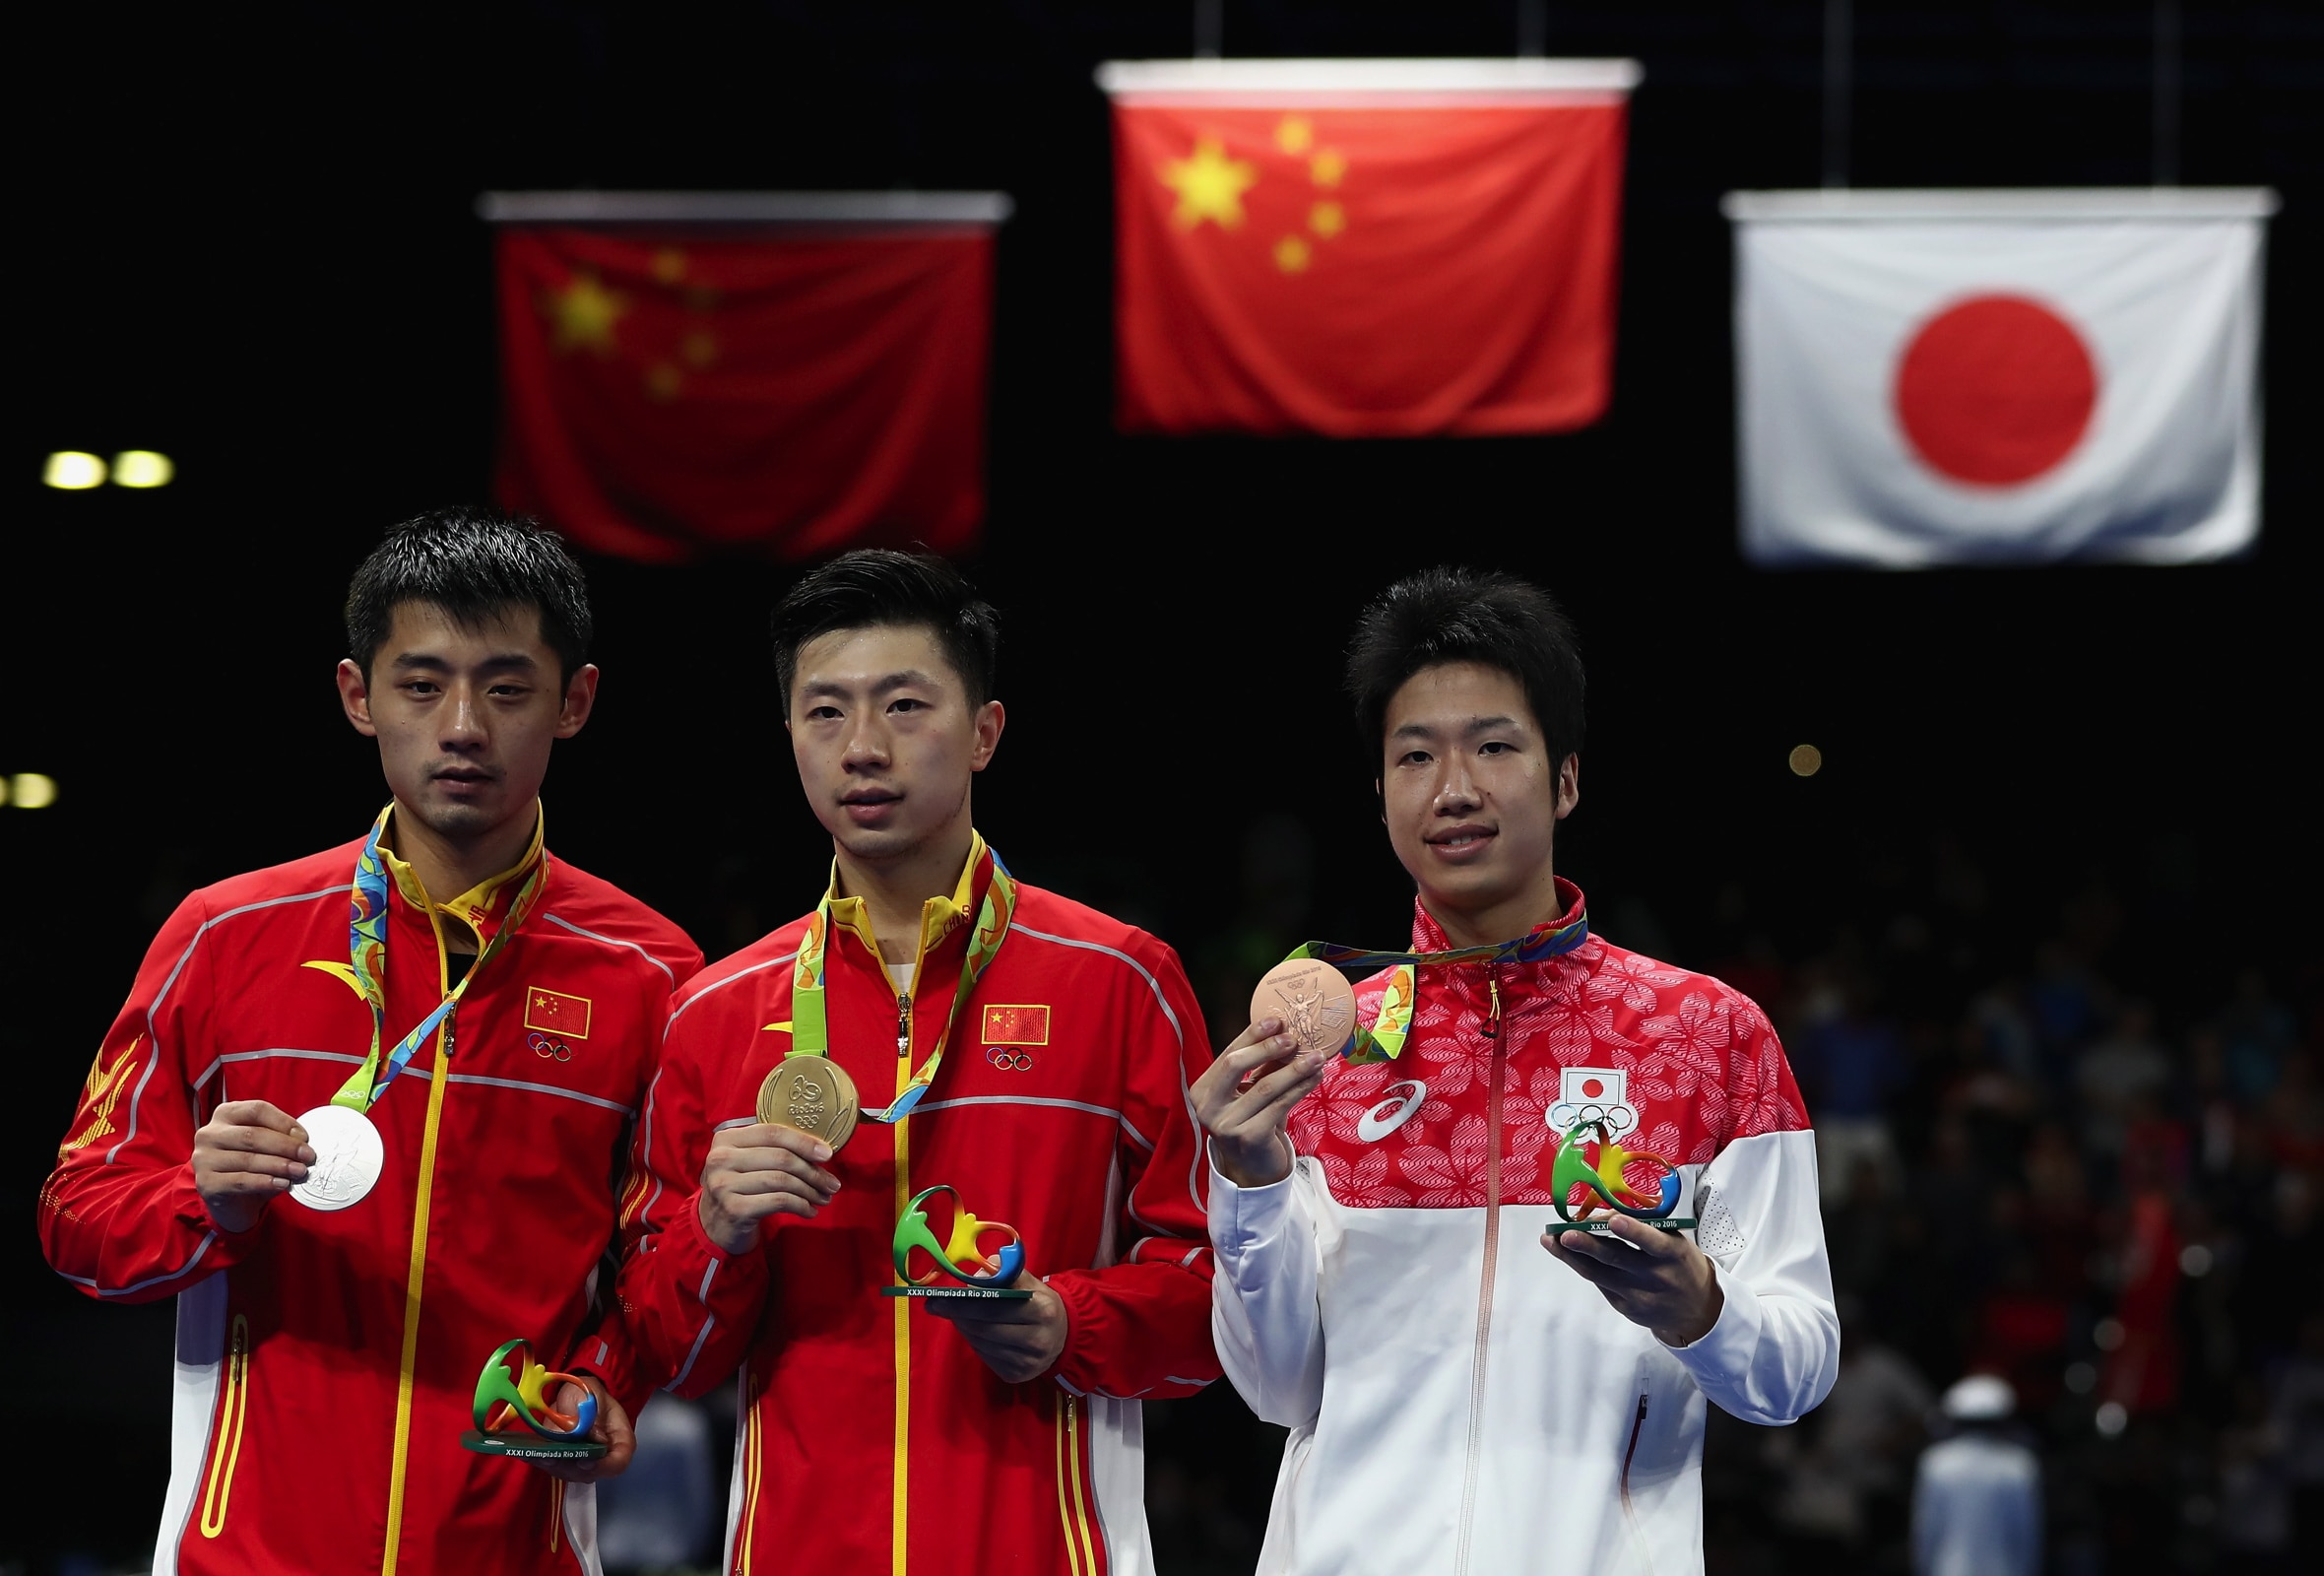 Table Tennis - Men's Singles